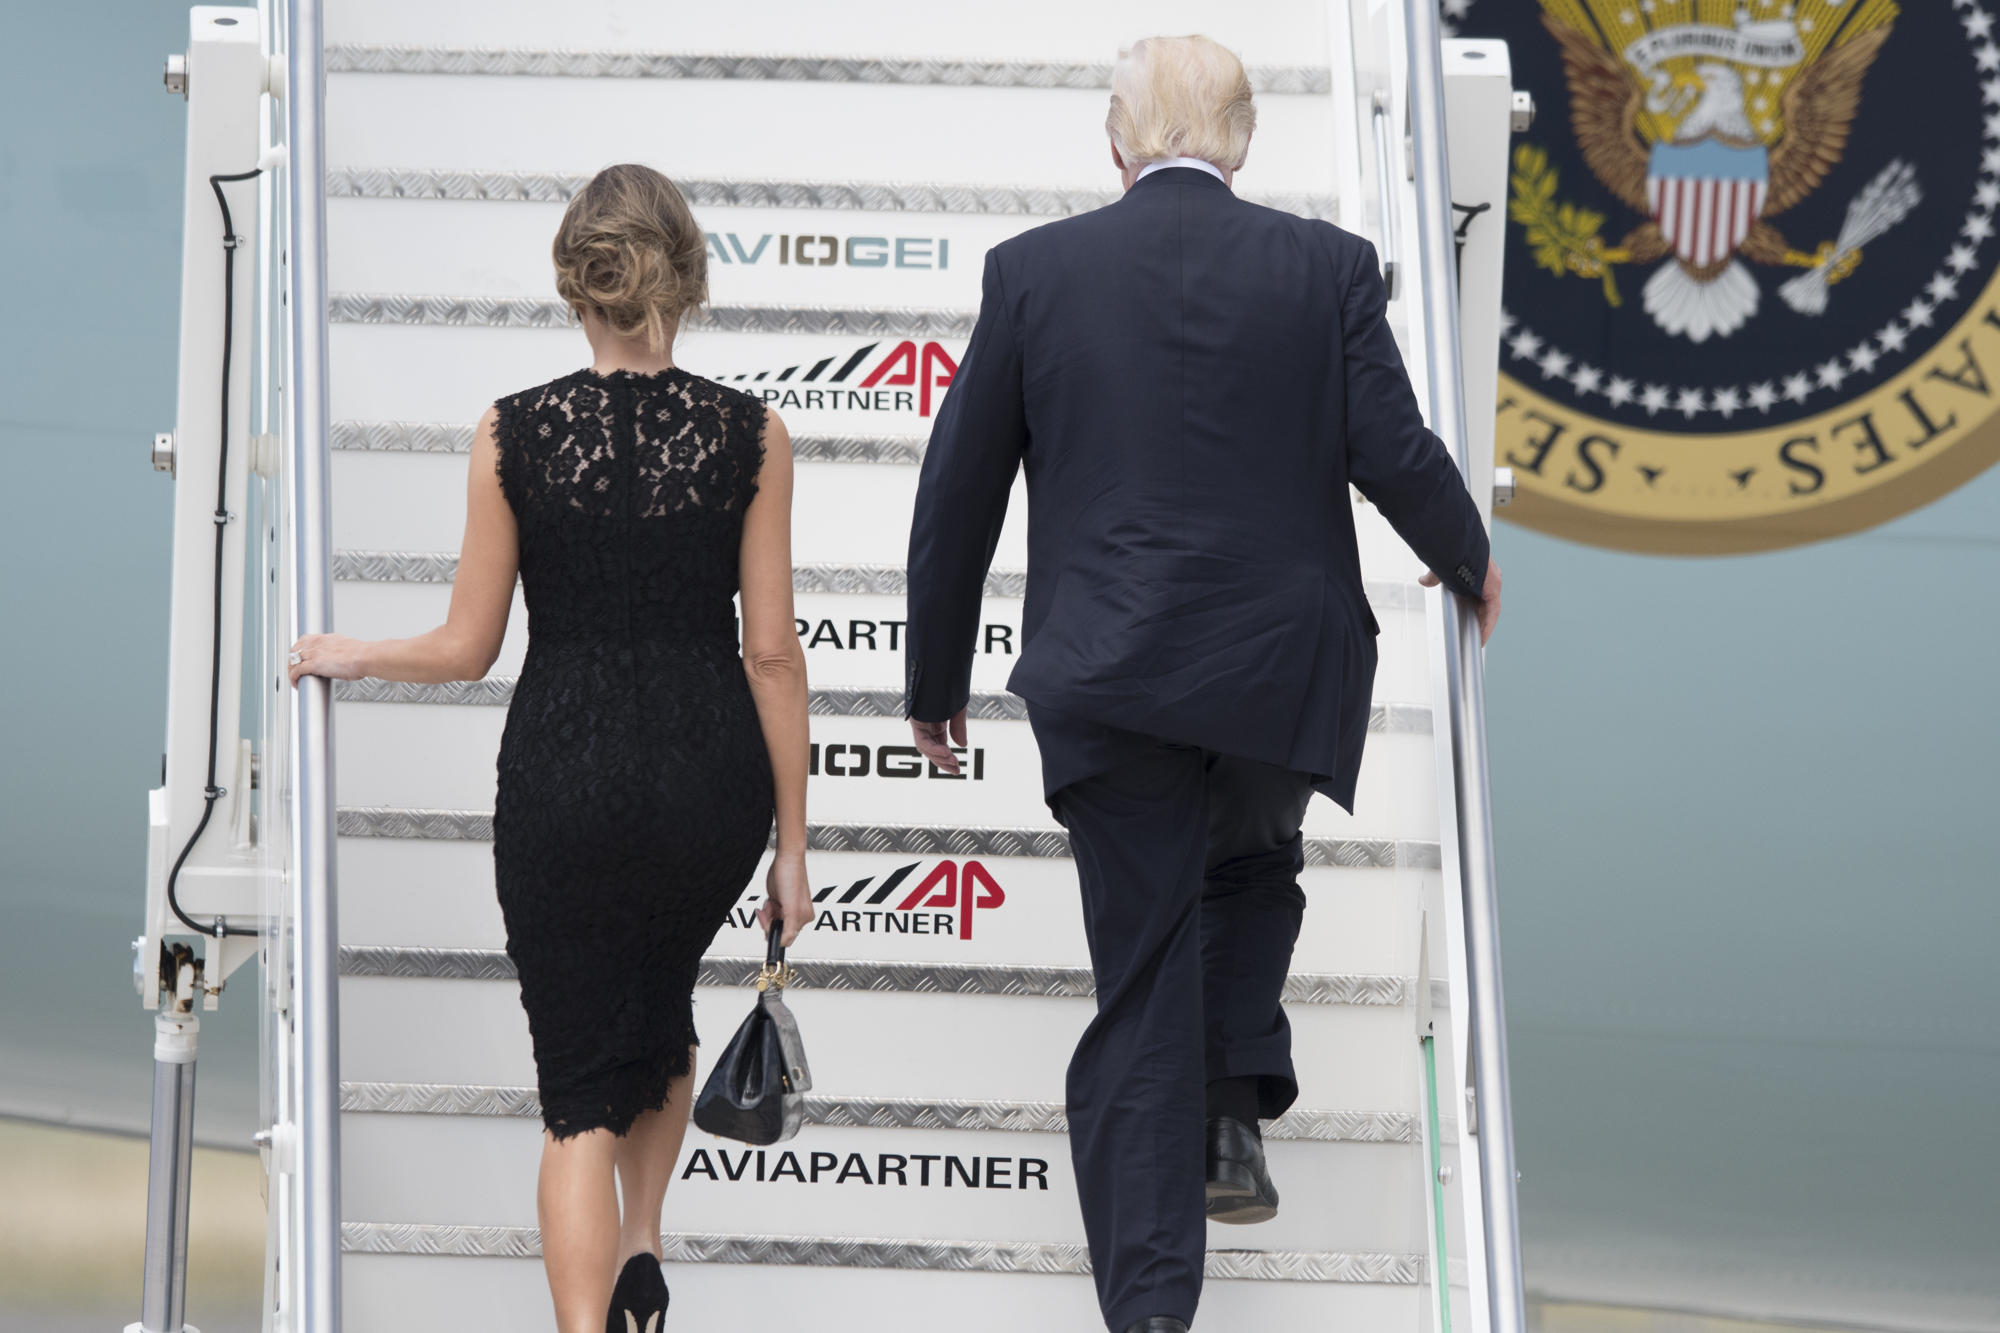 FLOTUS shed the D&G jacket leaving just the sleeveless lace dress (also Dolce &Gabbana) as she and her husband departed Italy. (Image: KIKA/WENN.com)